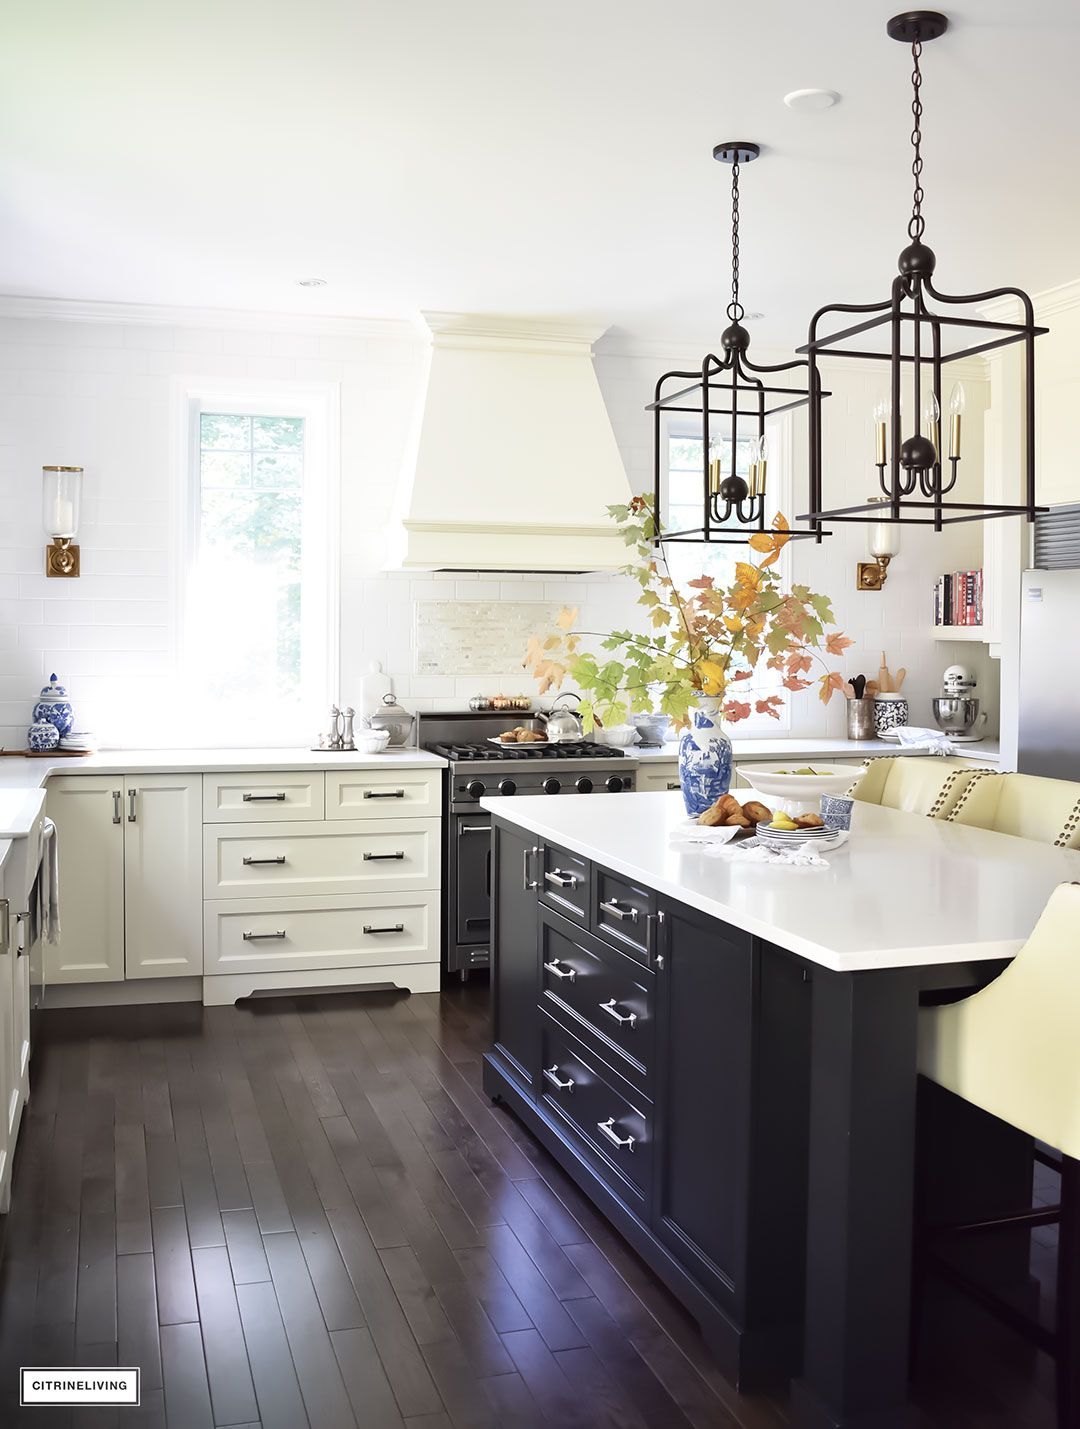 Fall home tour using rich colors brass and gold pinterest white fall home tour casual elegant black and white kitchen with large black island and lantern style pendant lighting blue and white vases and fall foliage aloadofball Choice Image